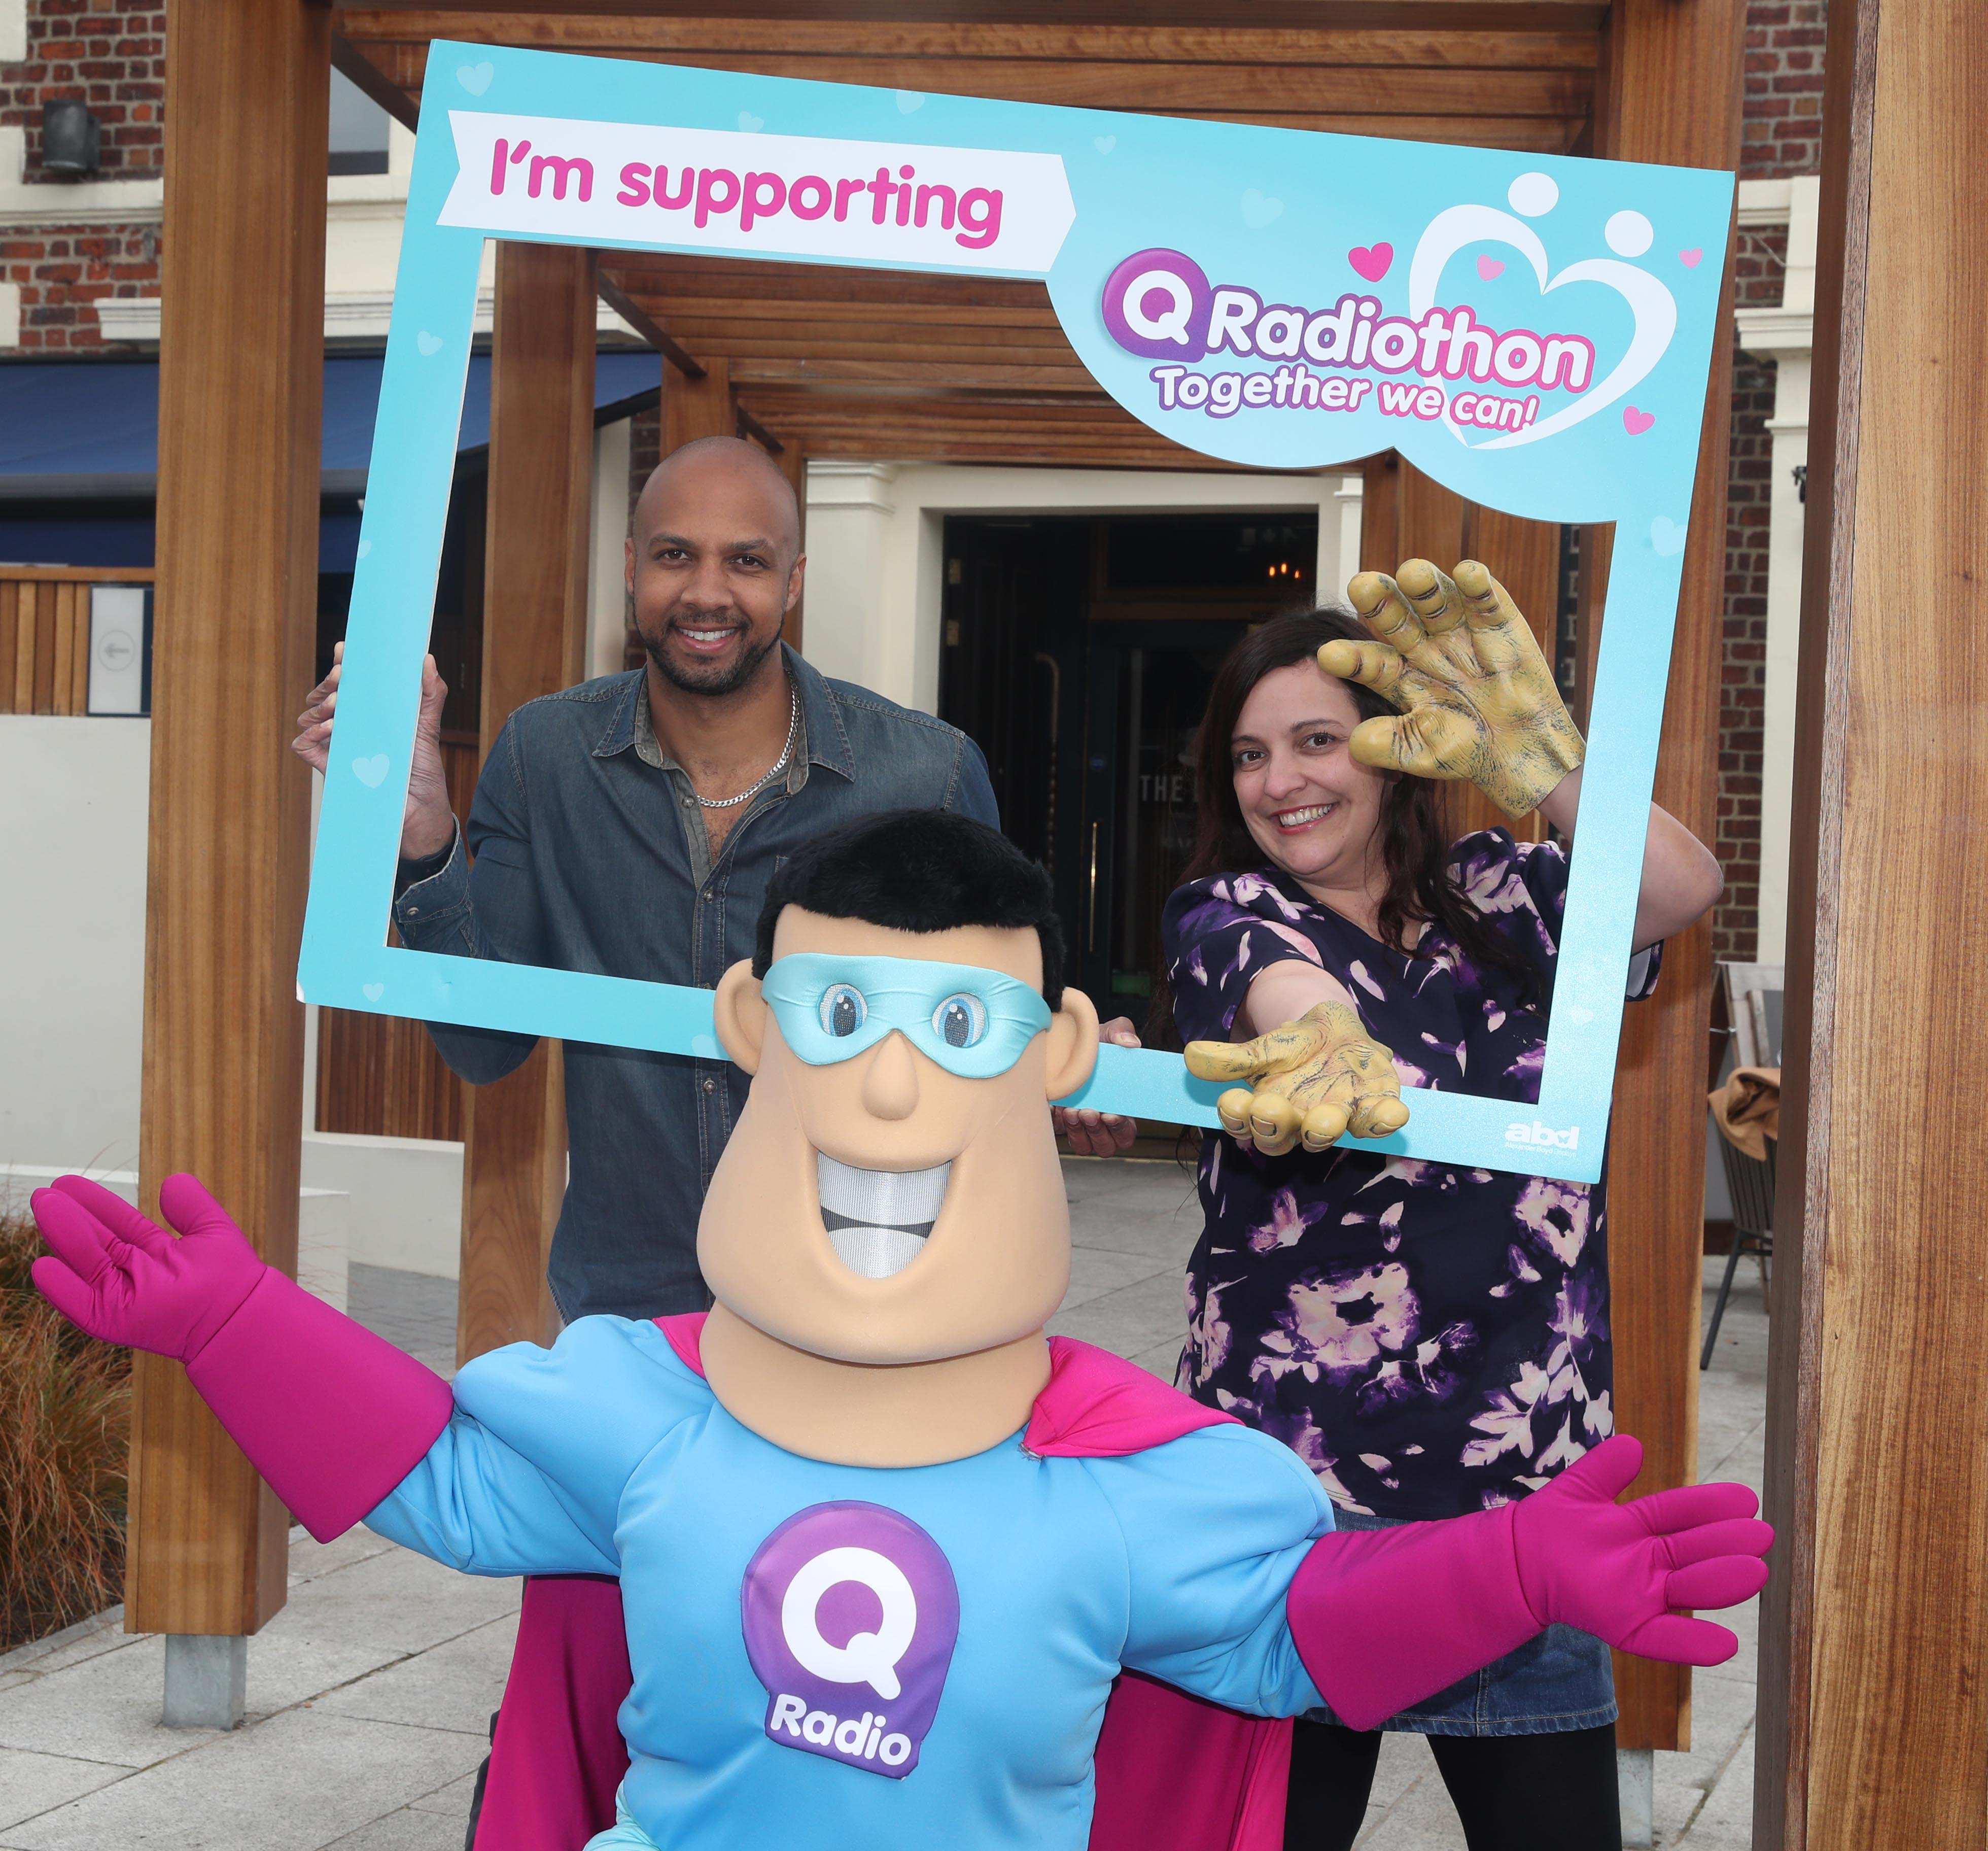 Q Radiothon 2019 has officially launched